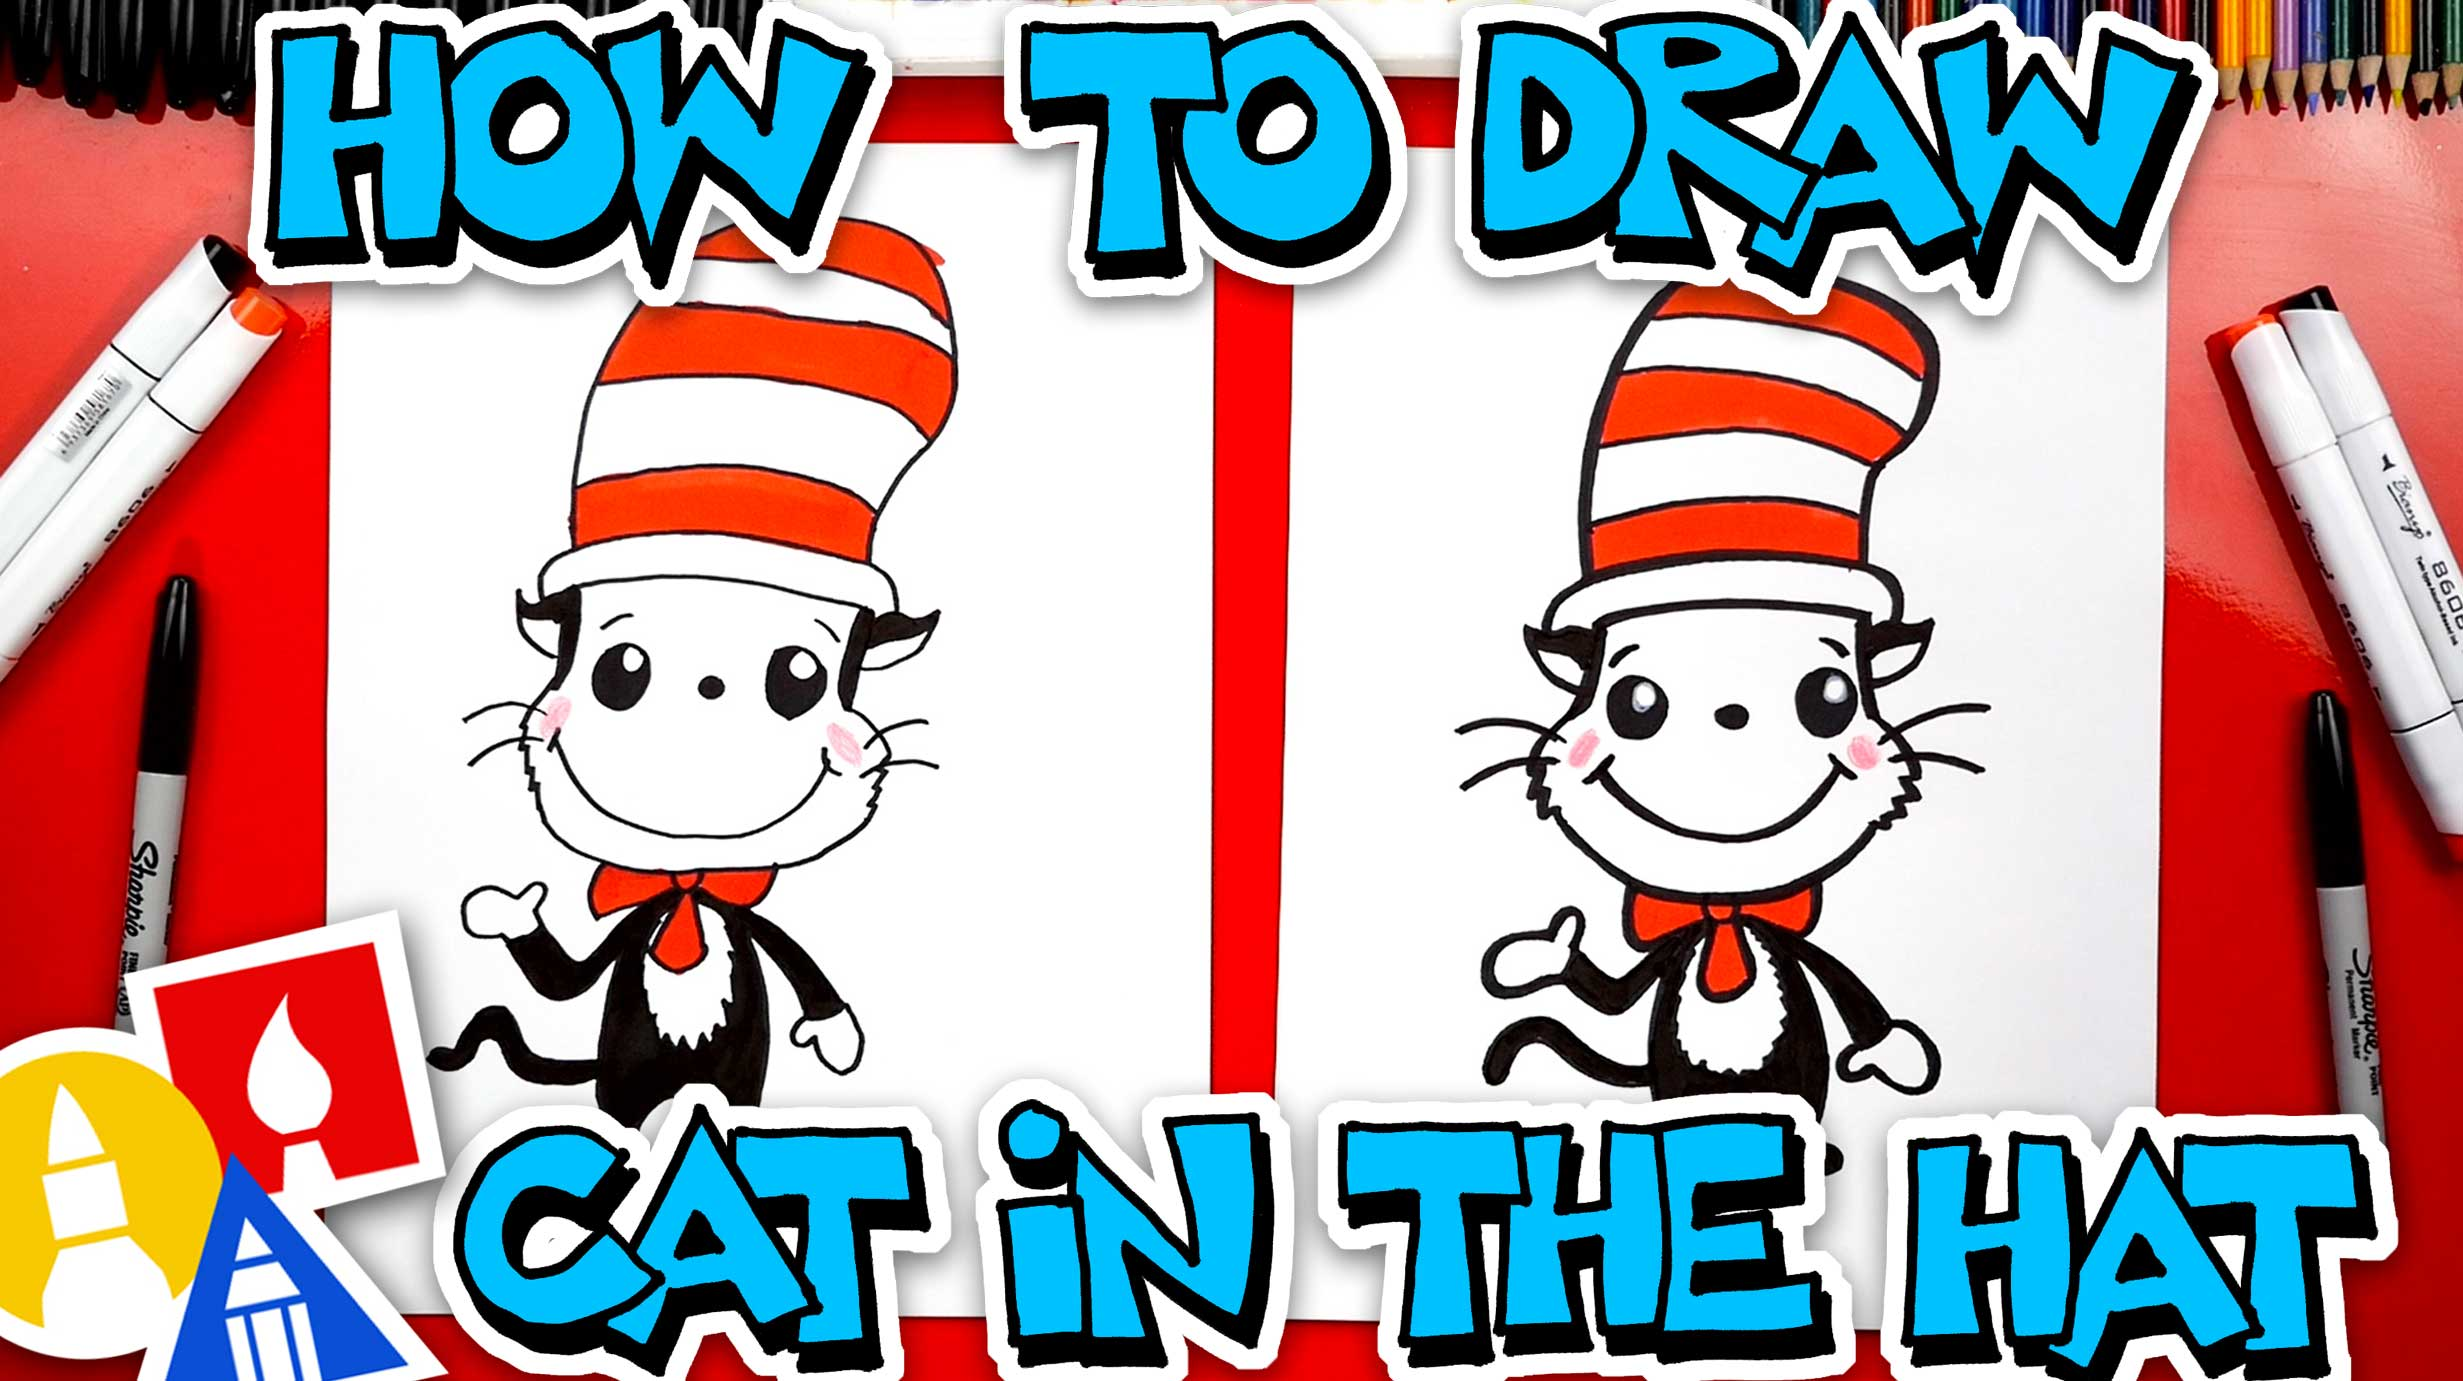 How To Draw The Cat In The Hat Easy Cartoon Version Art For Kids Hub